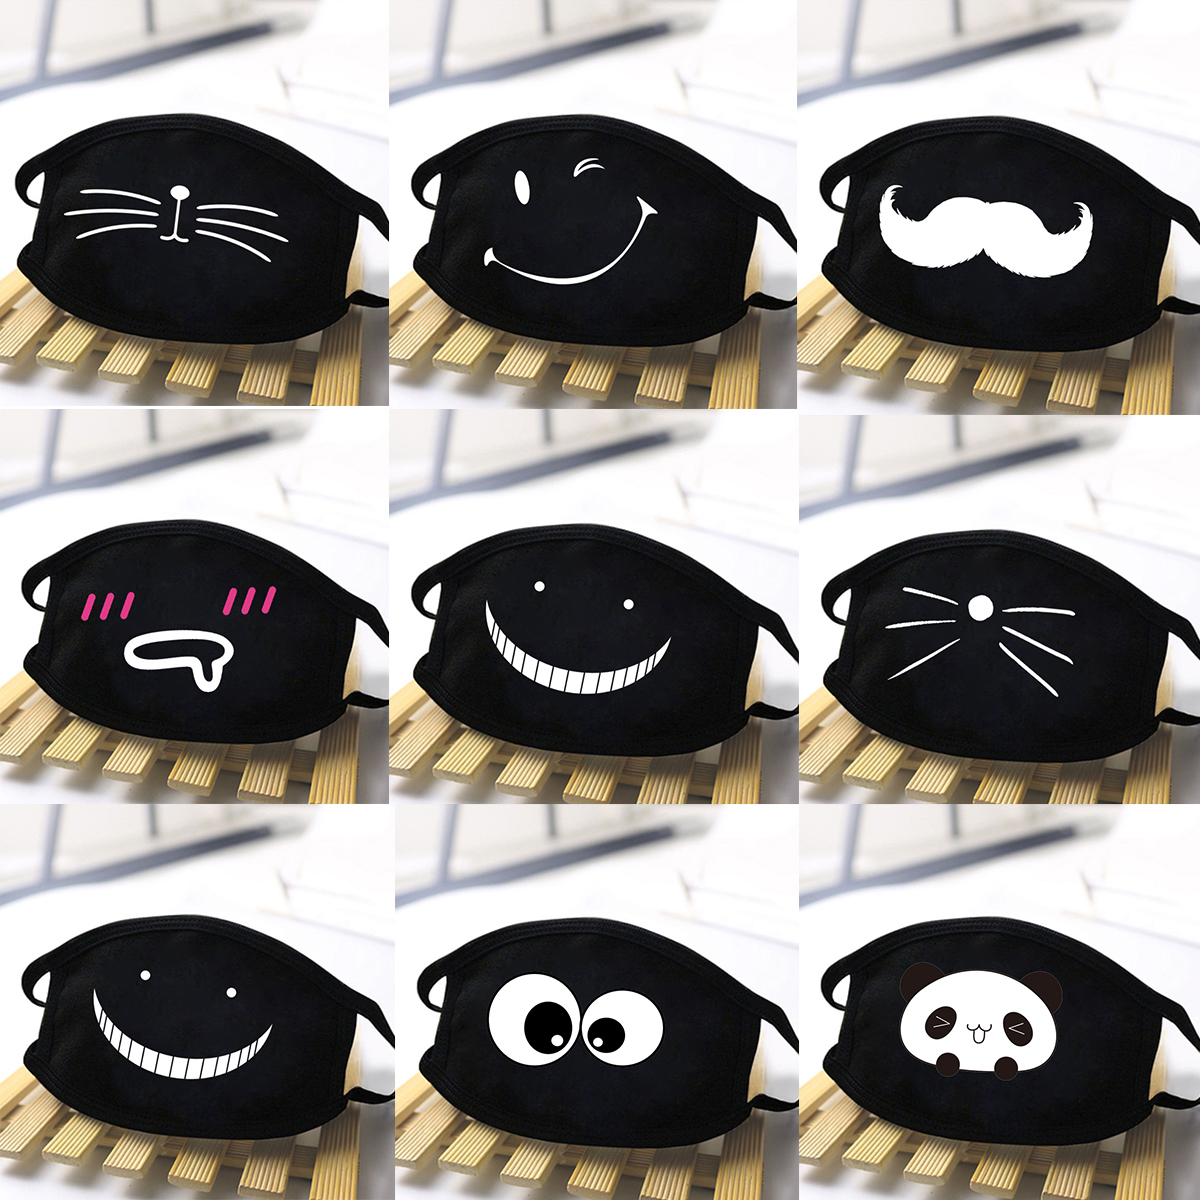 Kawaii Cute Cat Print Winter Masks Black Mouth Mask Anti Haze Washable Reusable Dustproof Mask Cartoon ExpressionTeeth Dust Mask